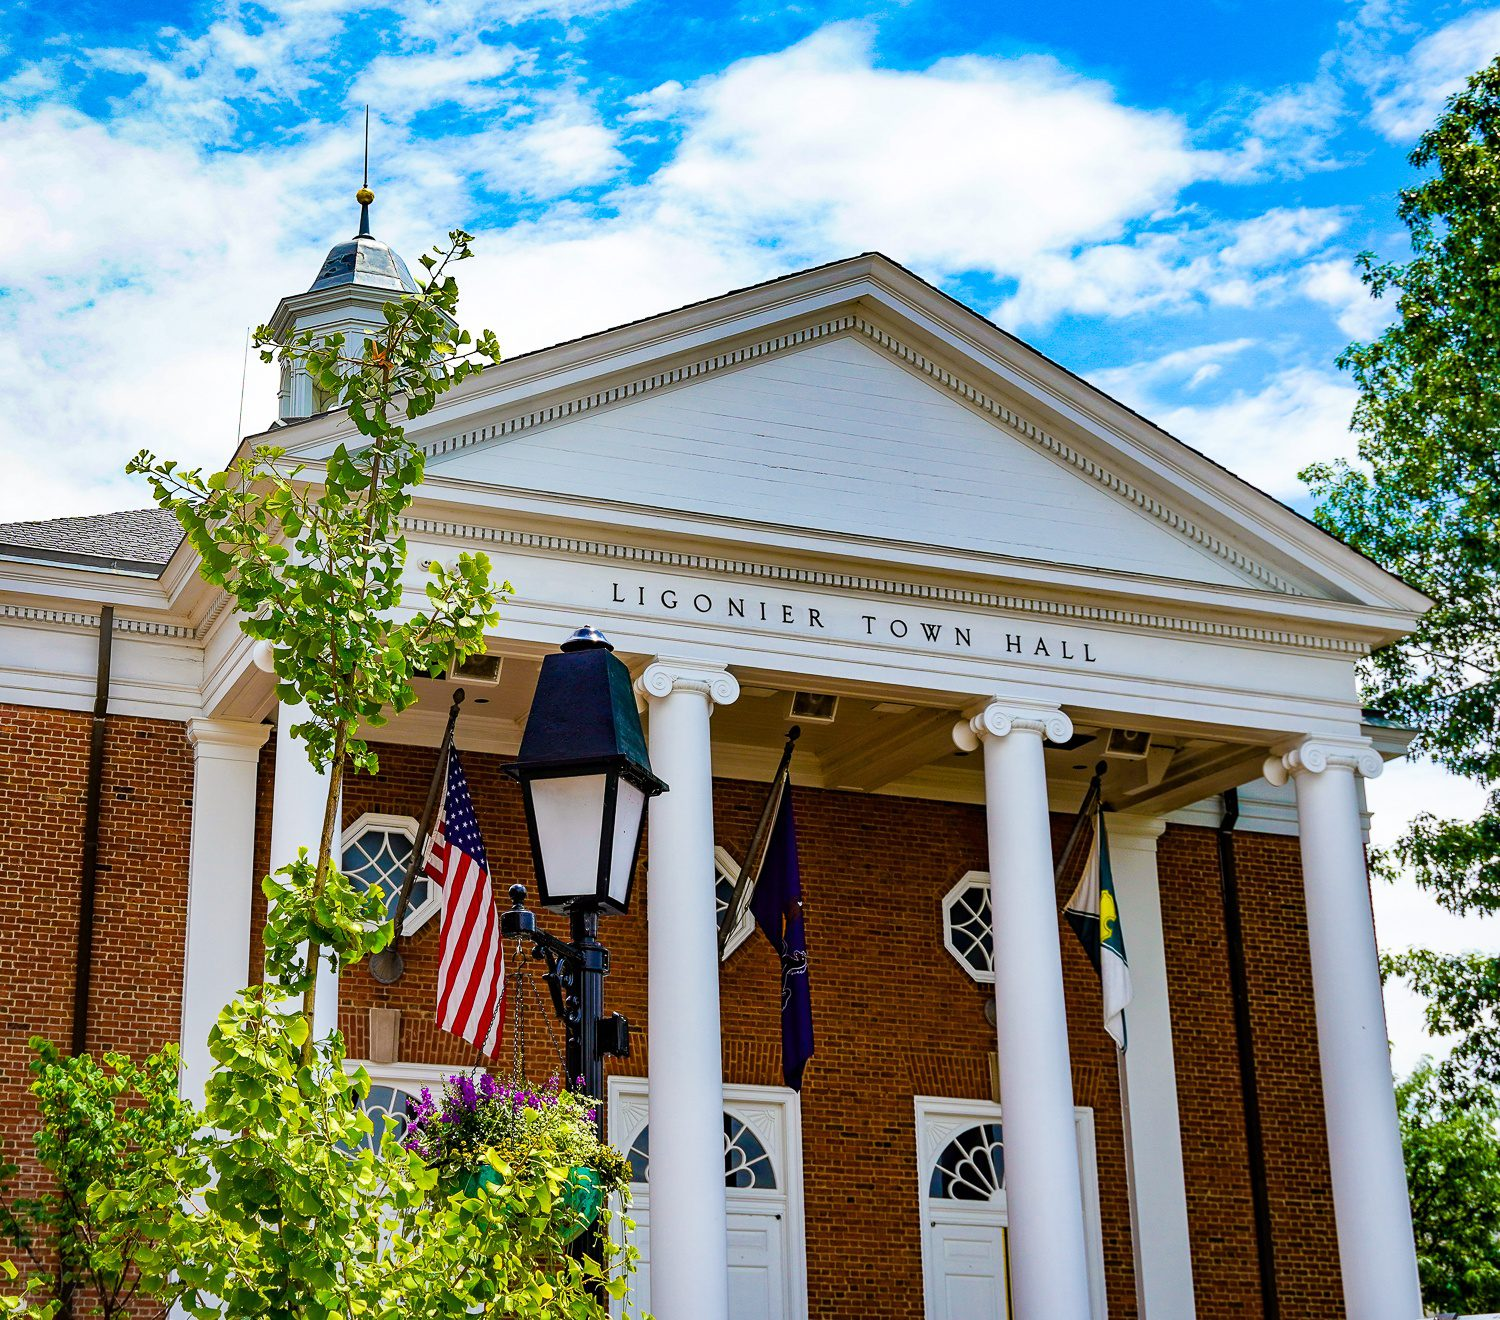 Ligonier Town Hall adds to the picturesque charm.